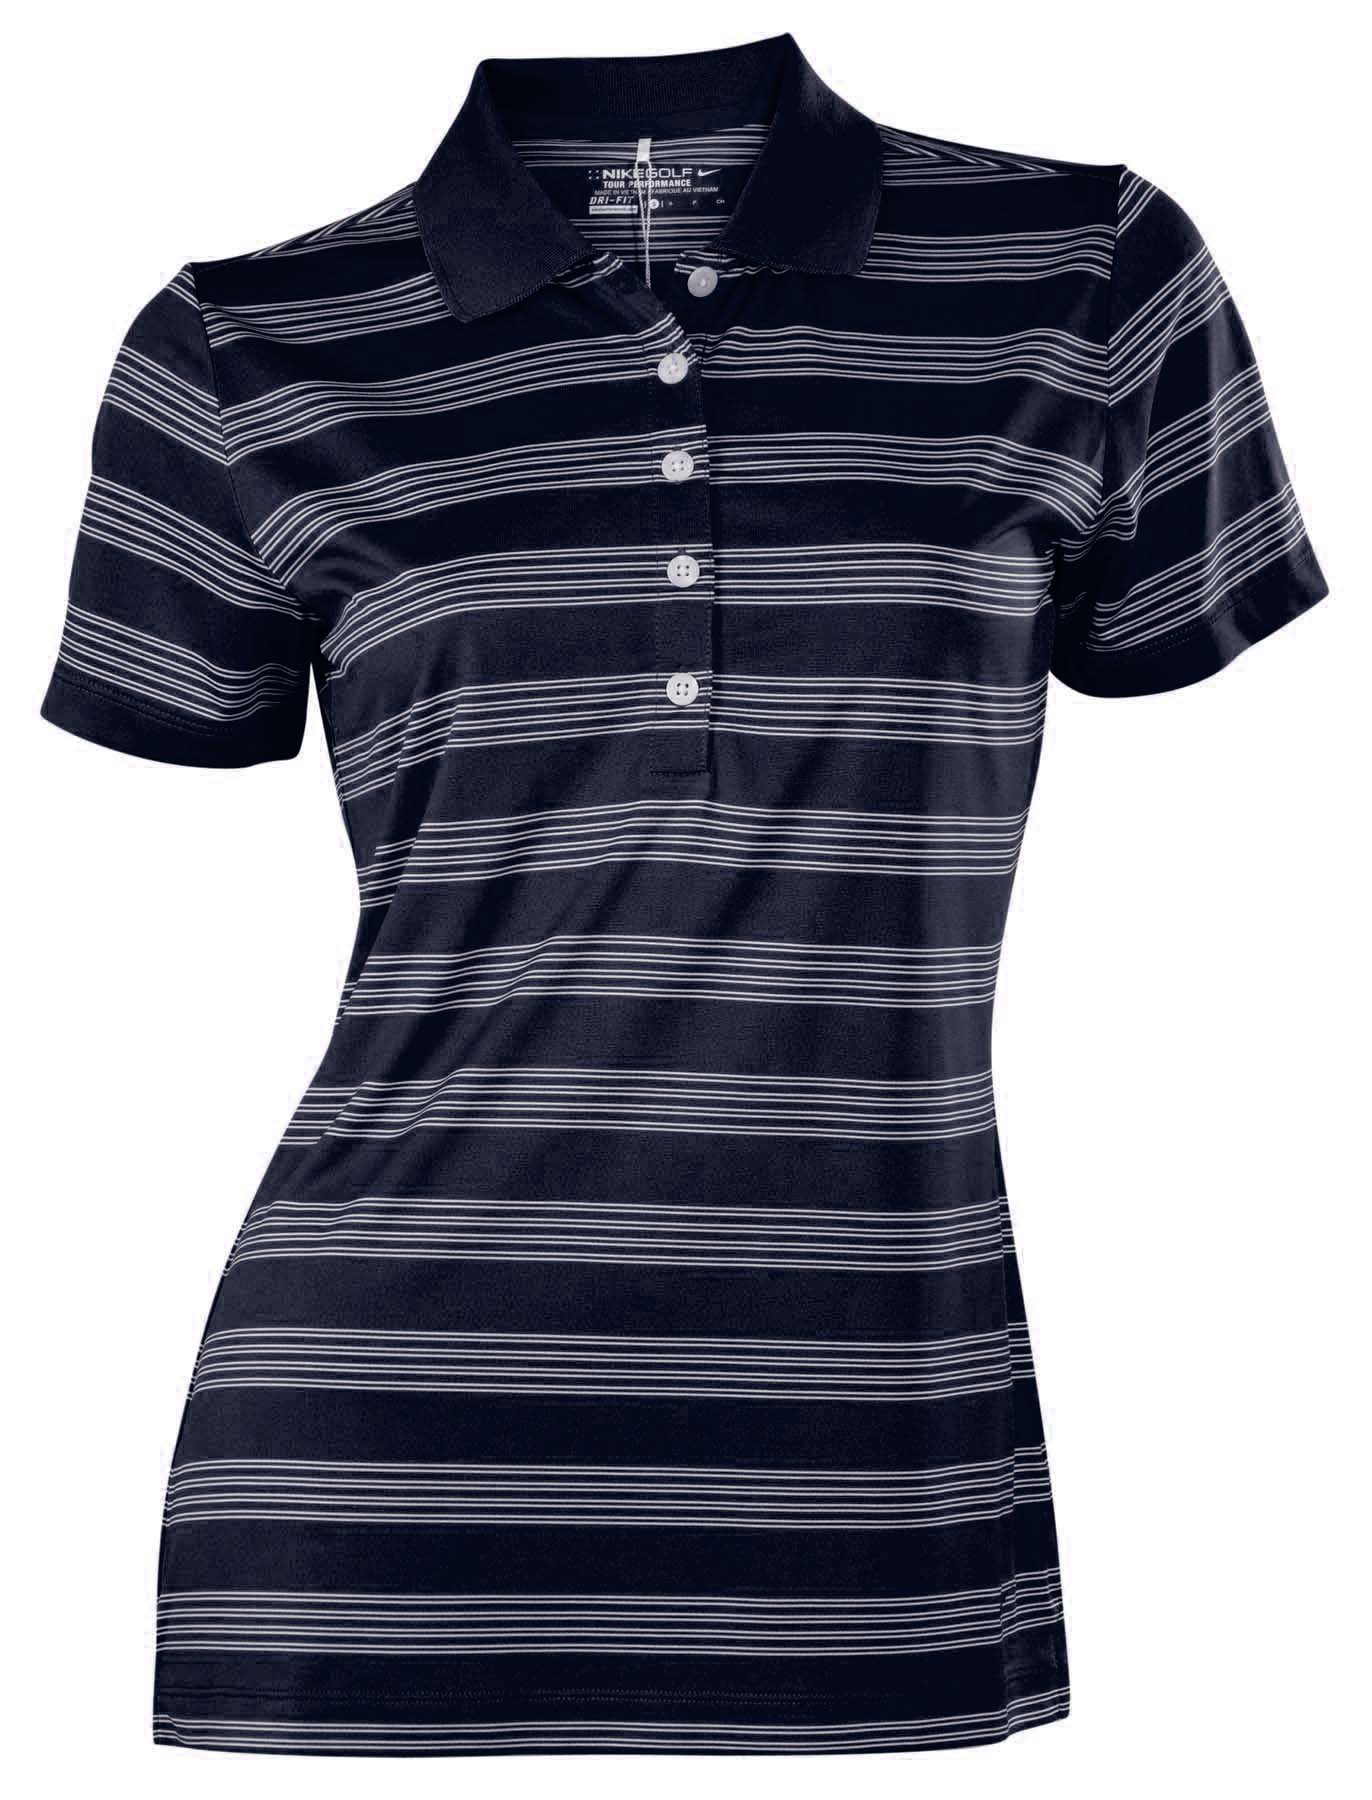 Nike Women's Dri-Fit Tech Striped Golf Polo Shirt | eBay